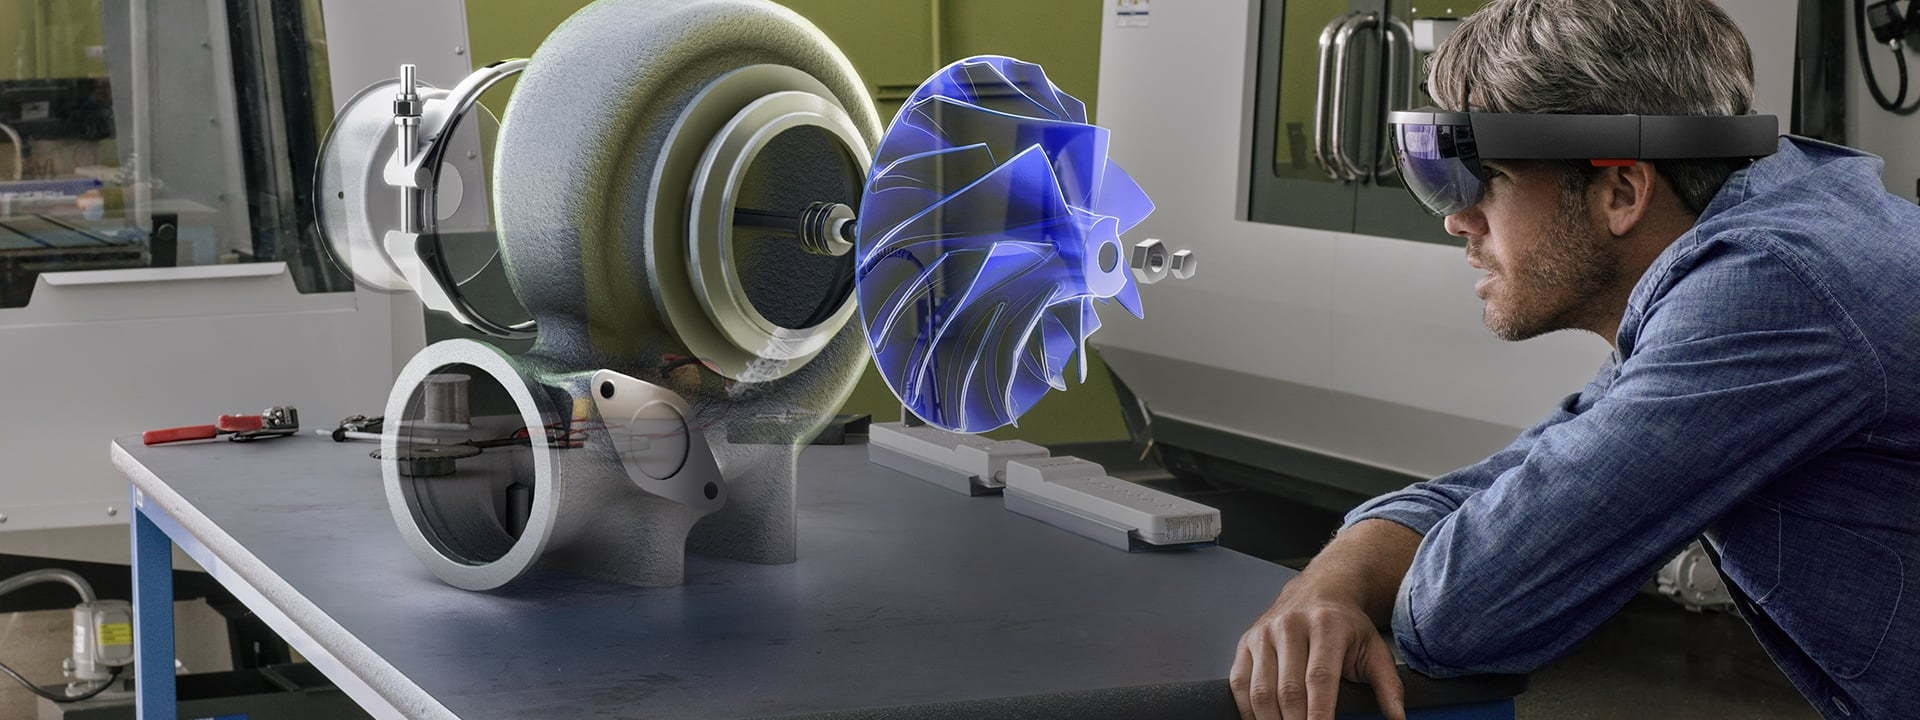 Man wearing HoloLens, leaning over a work surface, examining on a holographic engine